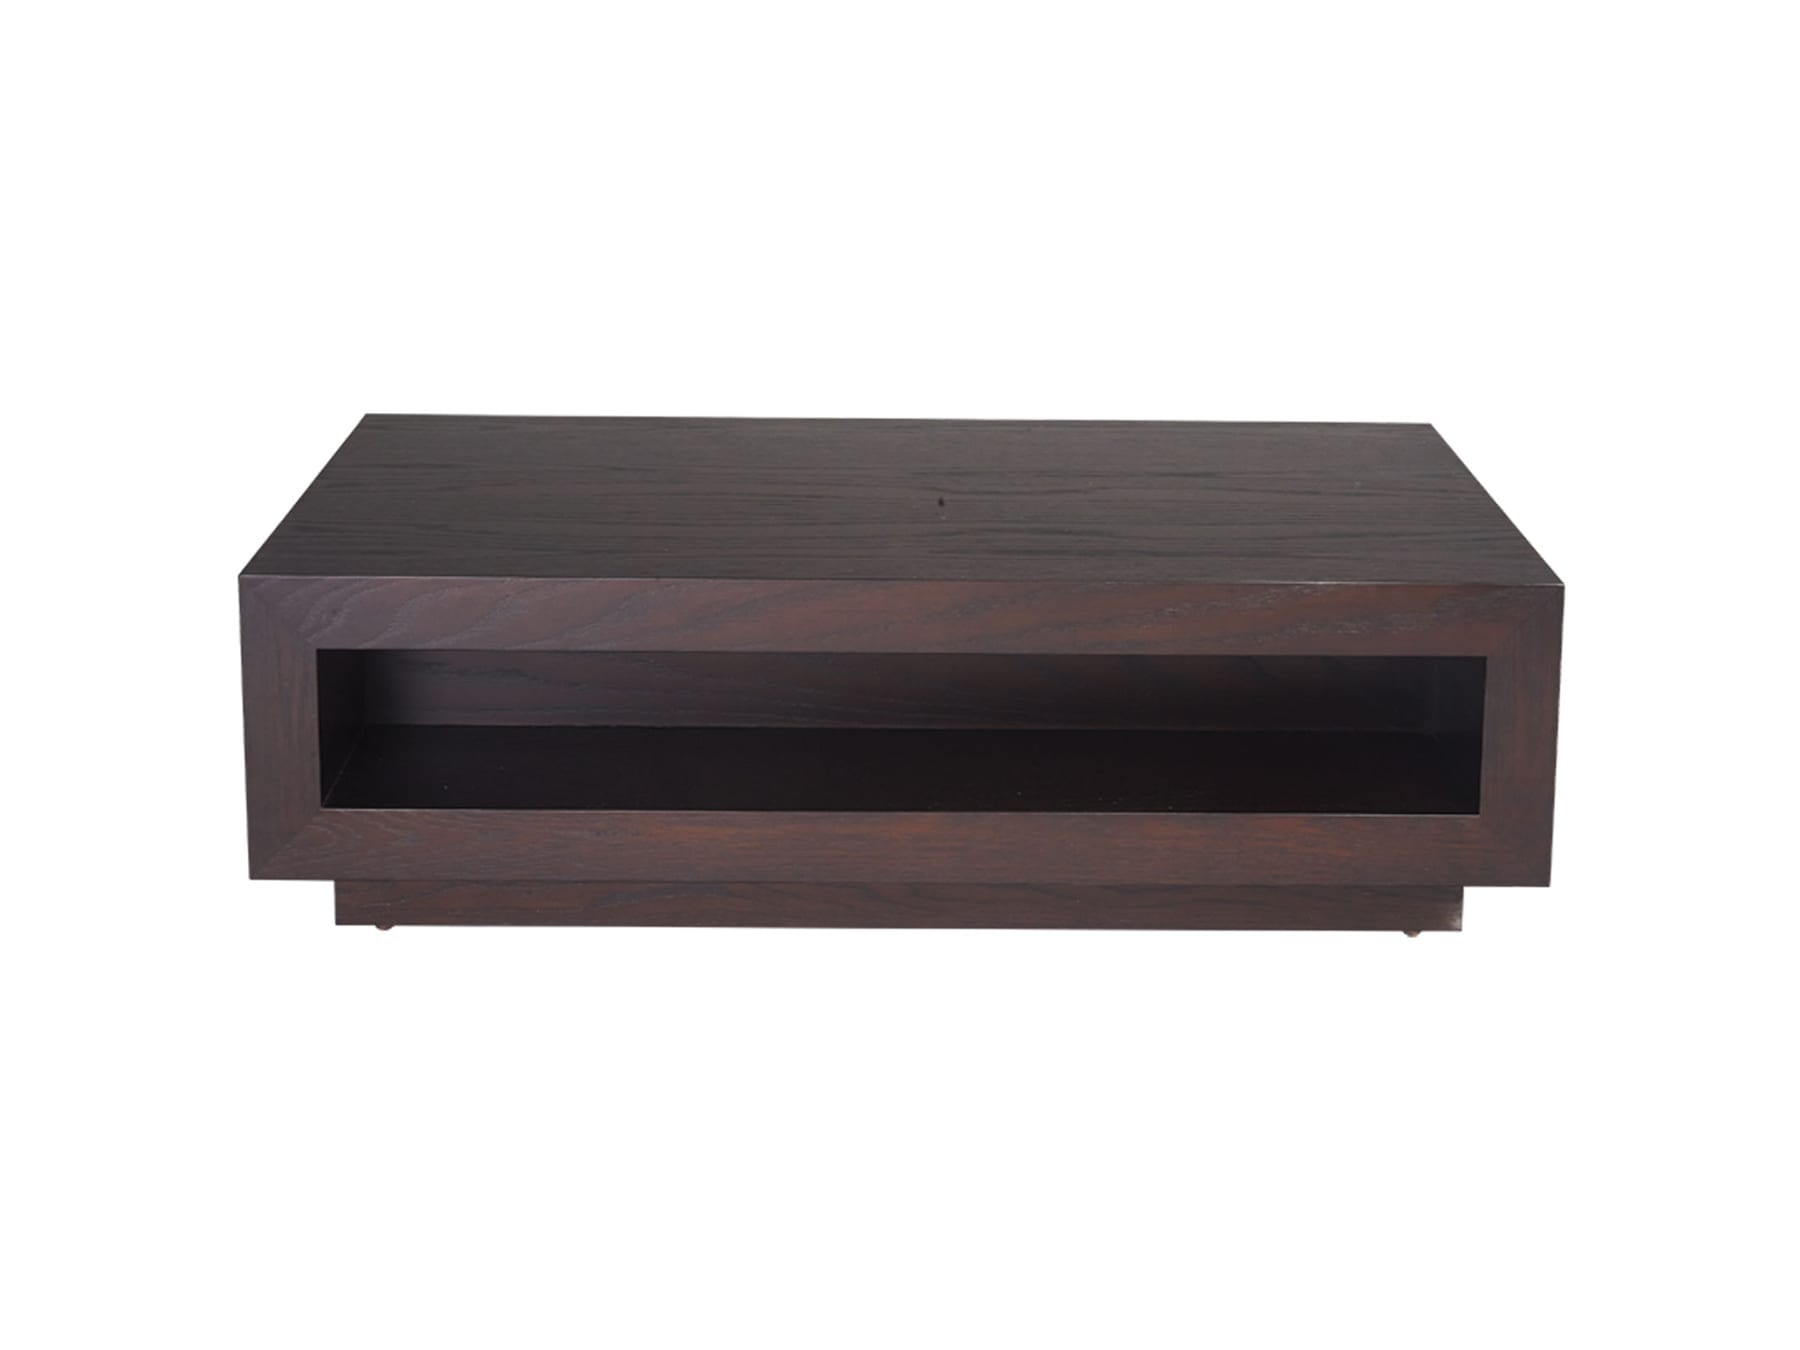 Evo Furniture Dimarco Coffee Table #1 available at McKenzie & Willis